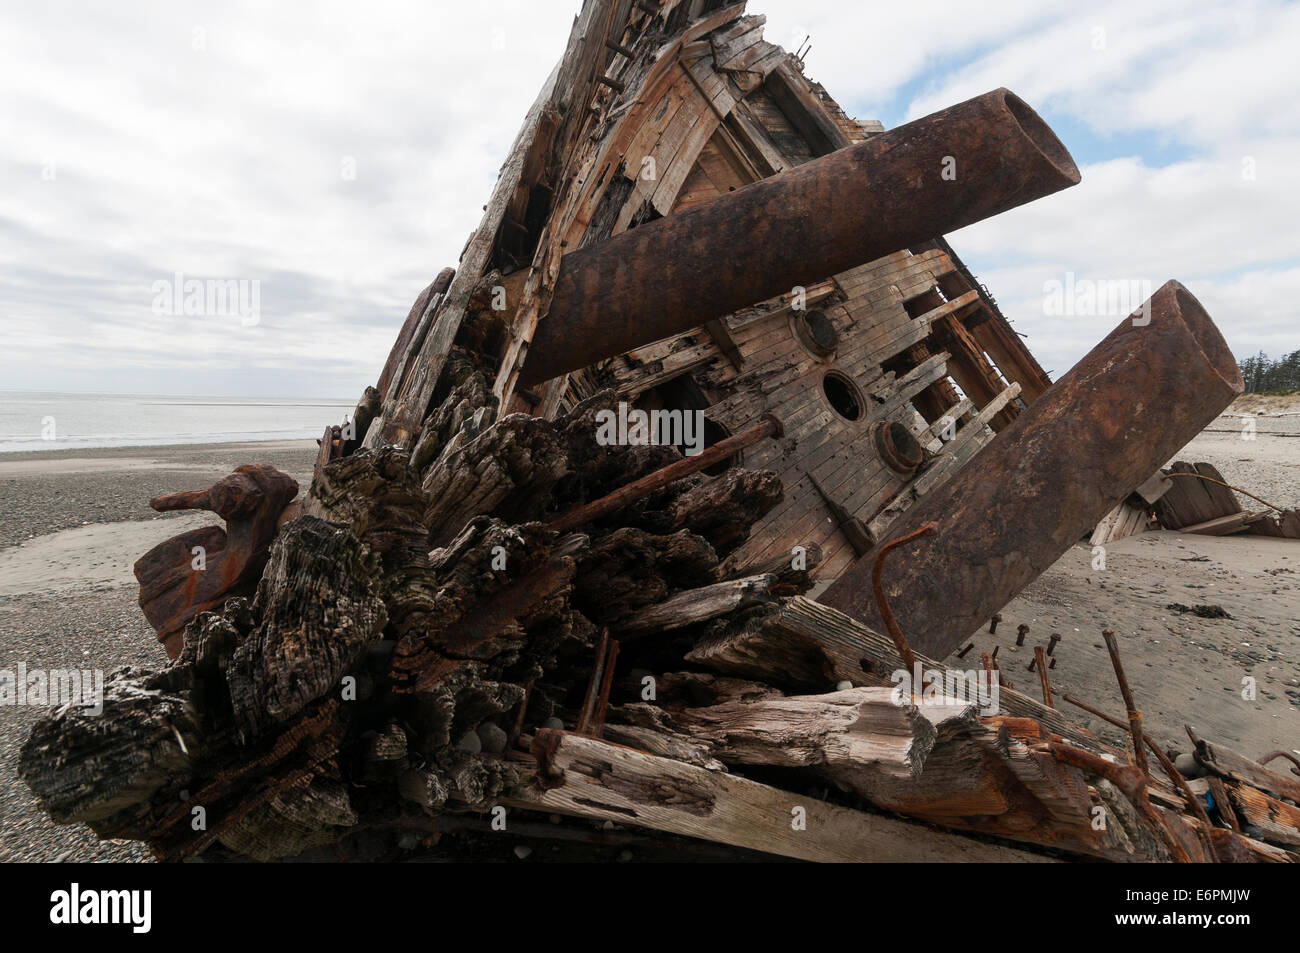 Elk203-4574 Canada, British Columbia, Haida Gwaii, Tlell, wreck of the Pesula - Stock Image